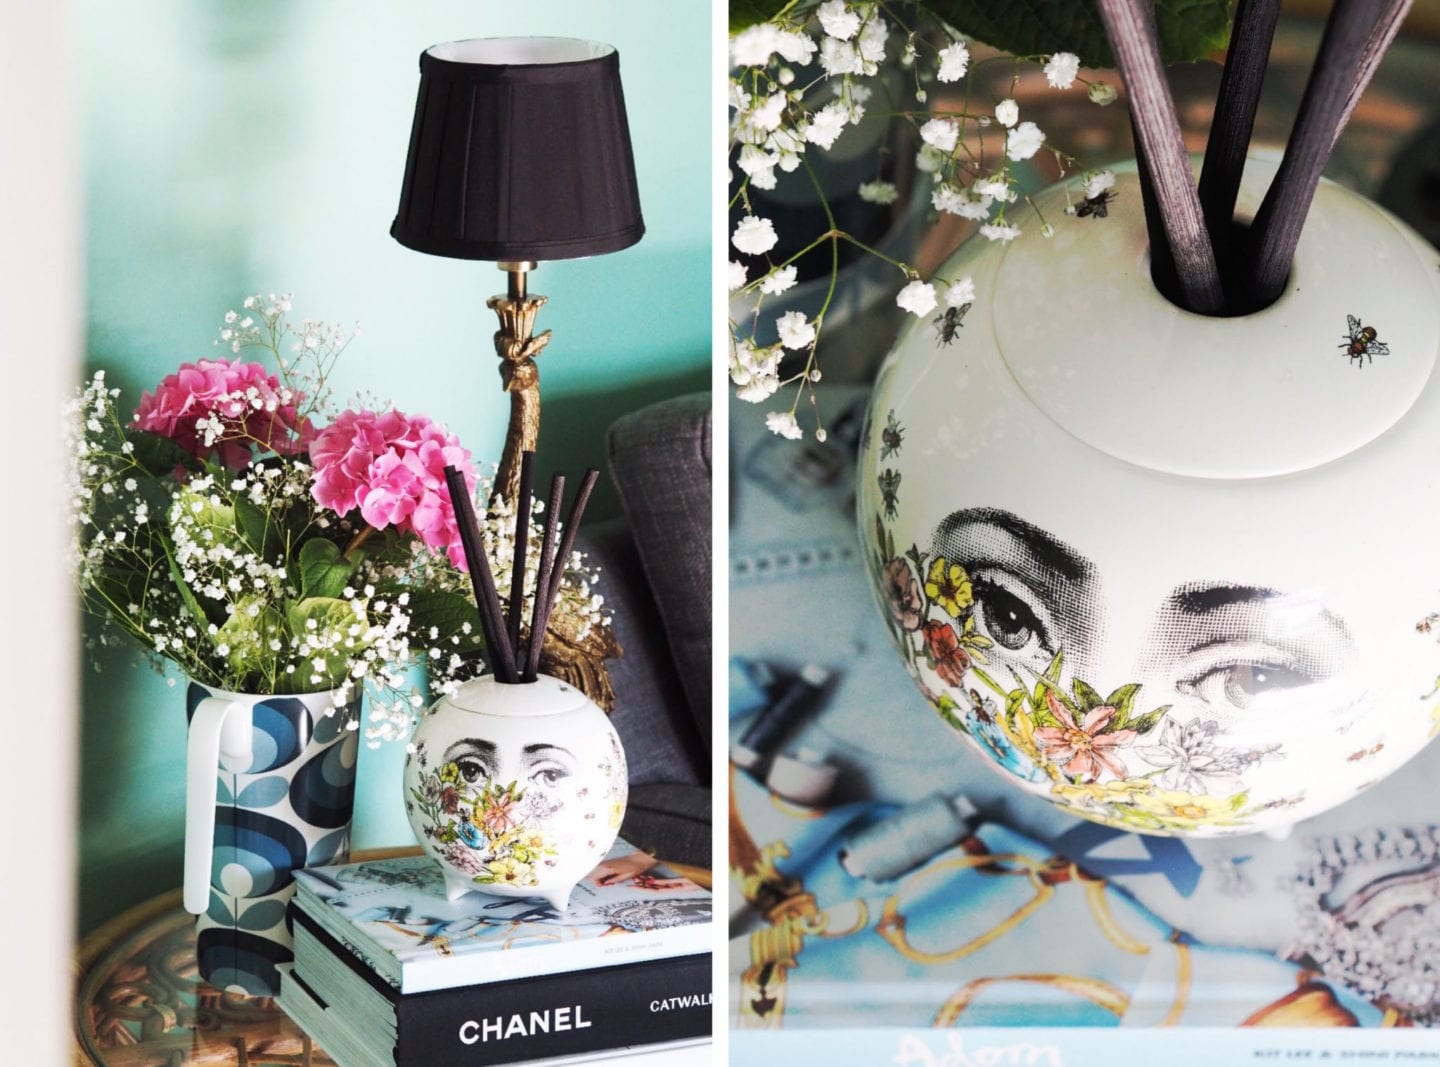 Fornasetti diffuser on coffee table